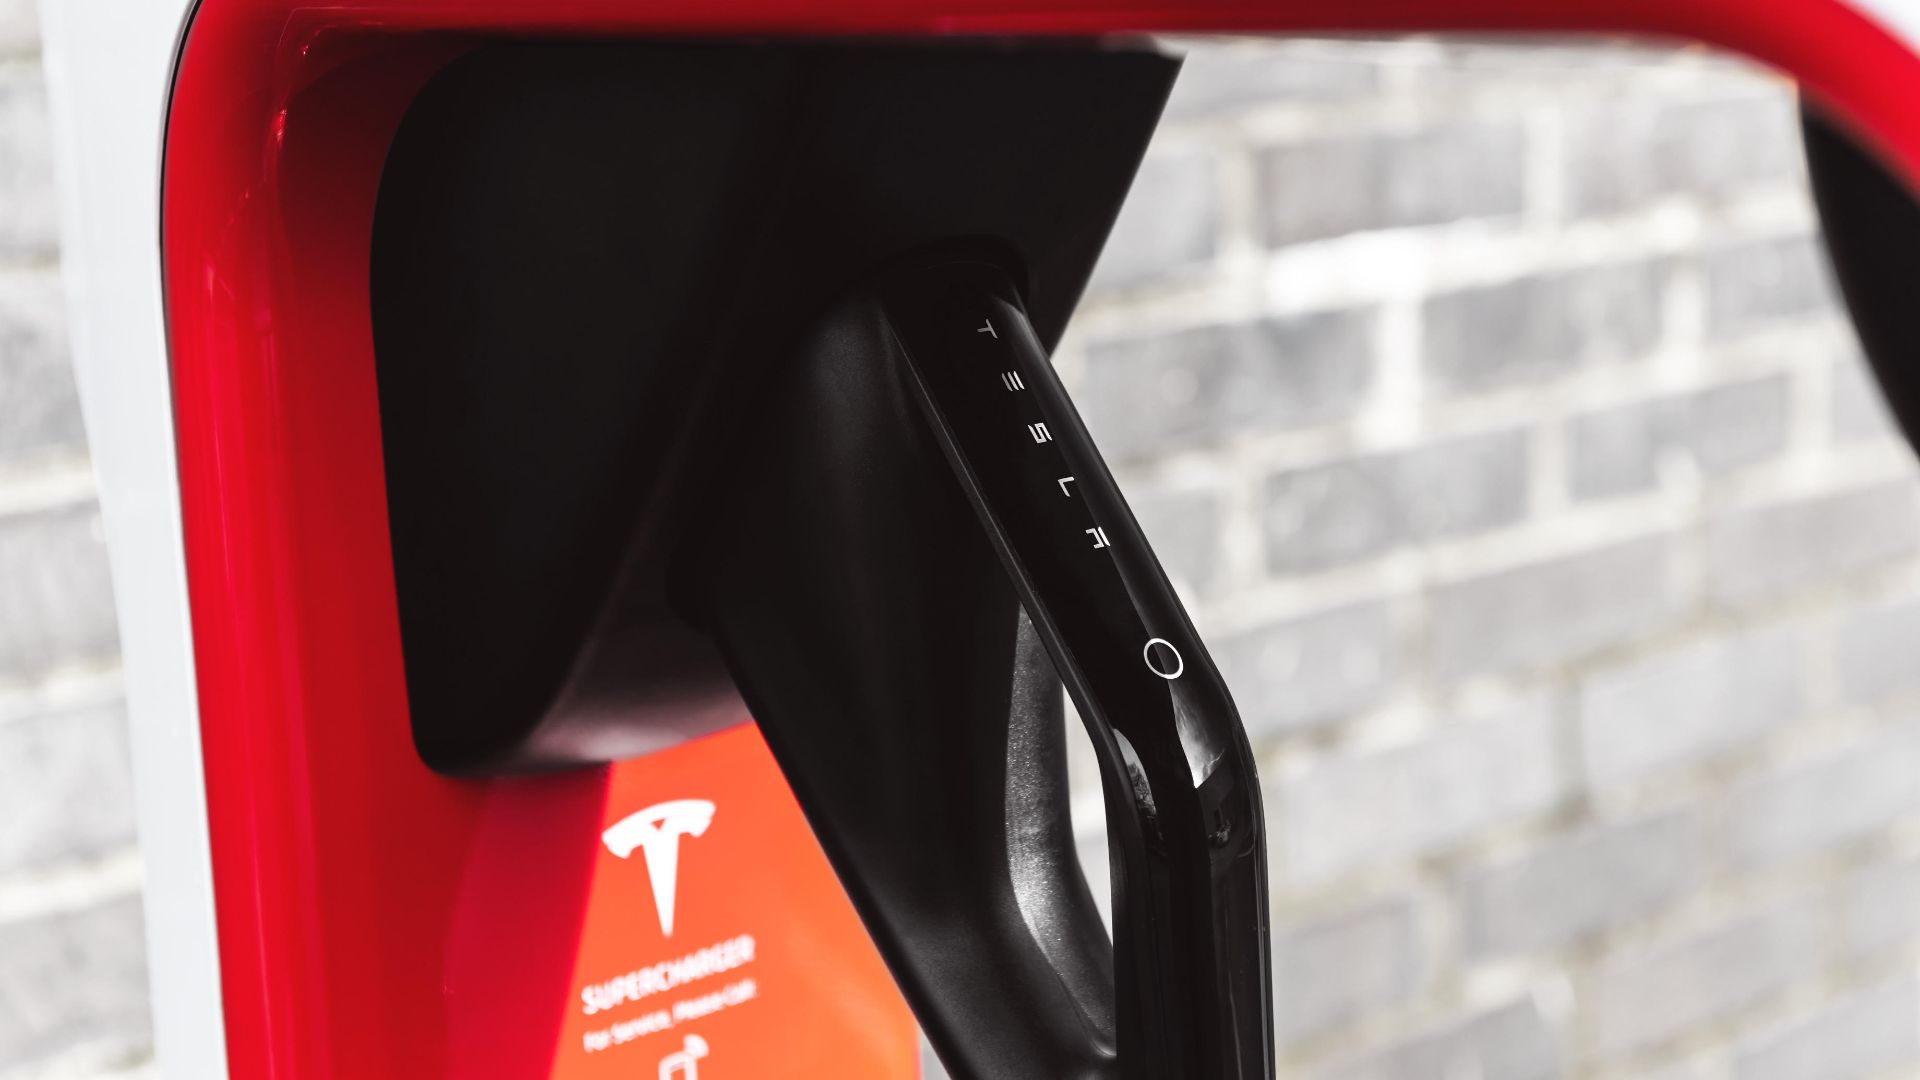 As promised by Elon Musk, Tesla launches its first European V3 Supercharger in Q4, which becomes the 500th Supercharger in Europe!